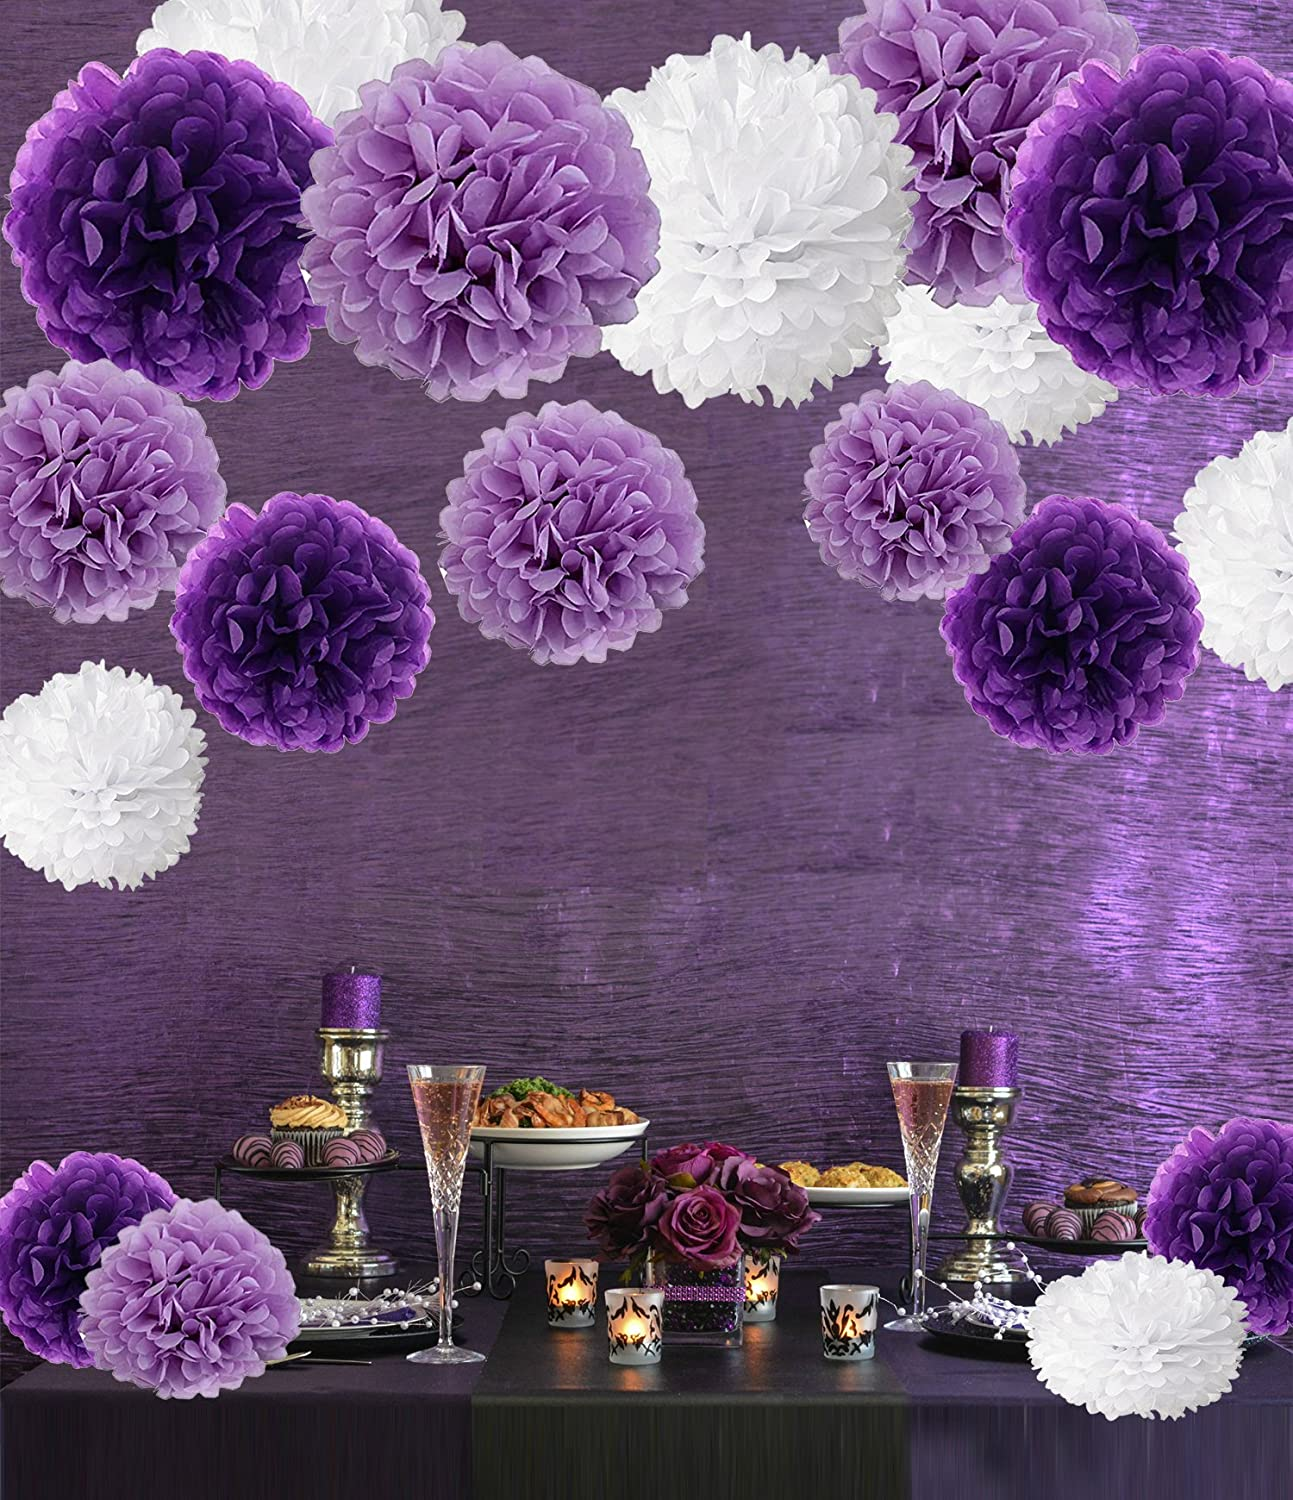 18 Pcs Tissue Paper Pom Poms Gold and Silver Black Recosis Paper Flower Ball for Birthday Party Wedding Baby Shower Bridal Shower Festival Decorations